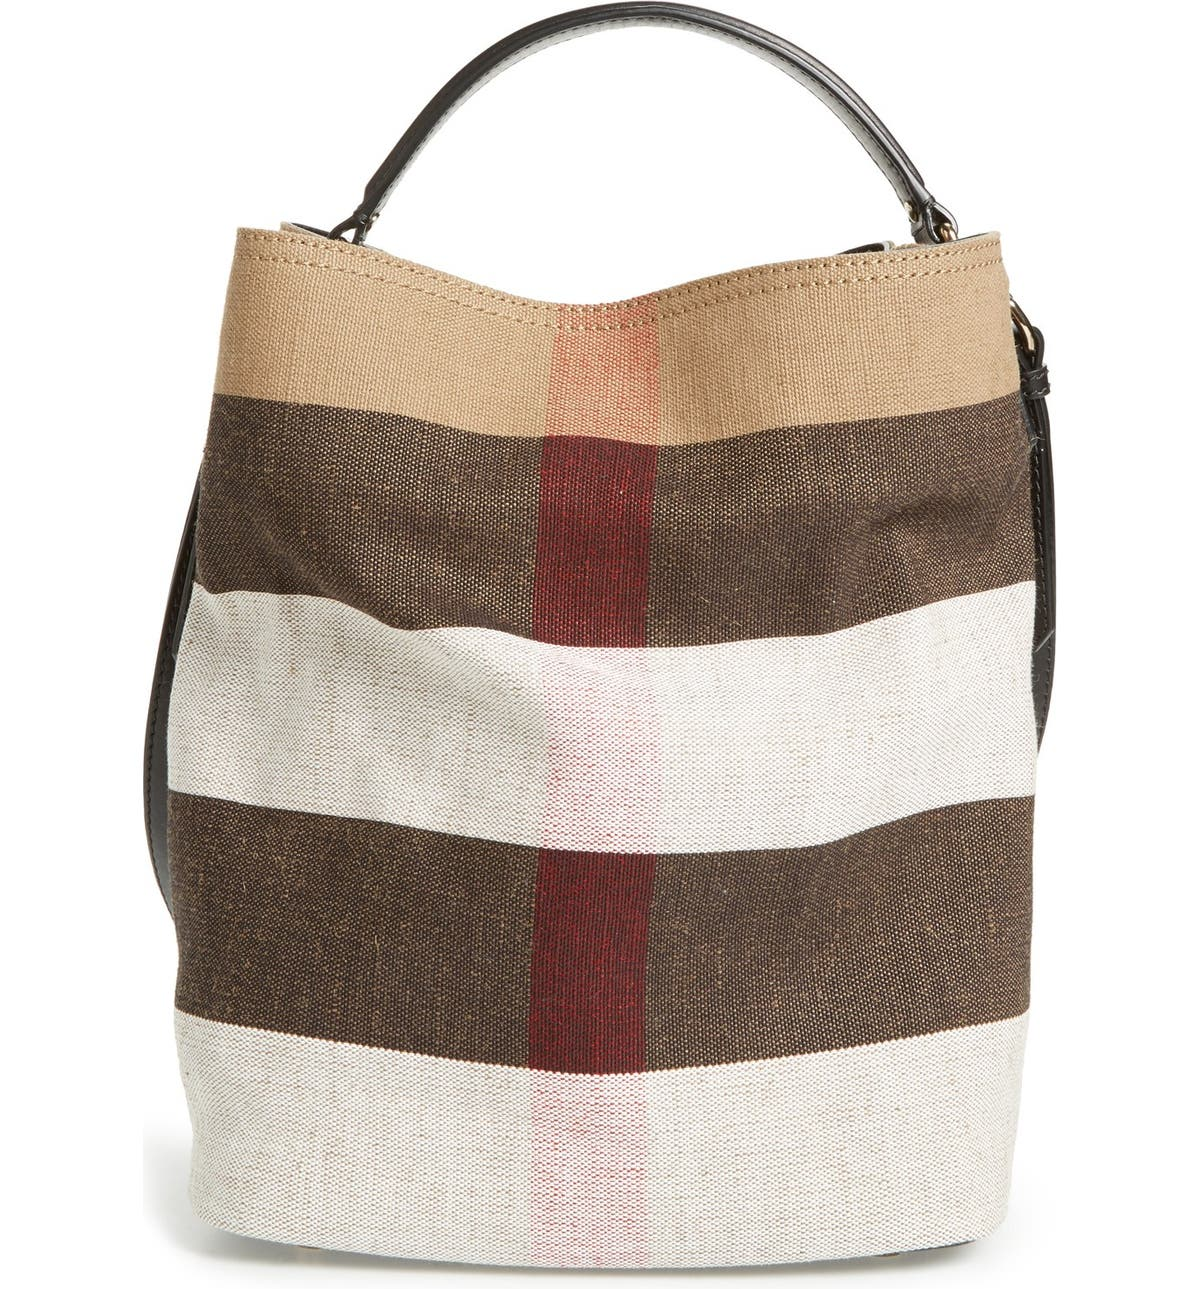 Burberry  Medium Susanna - Mega Check  Jute   Cotton Bucket Bag ... b439273ba73b3